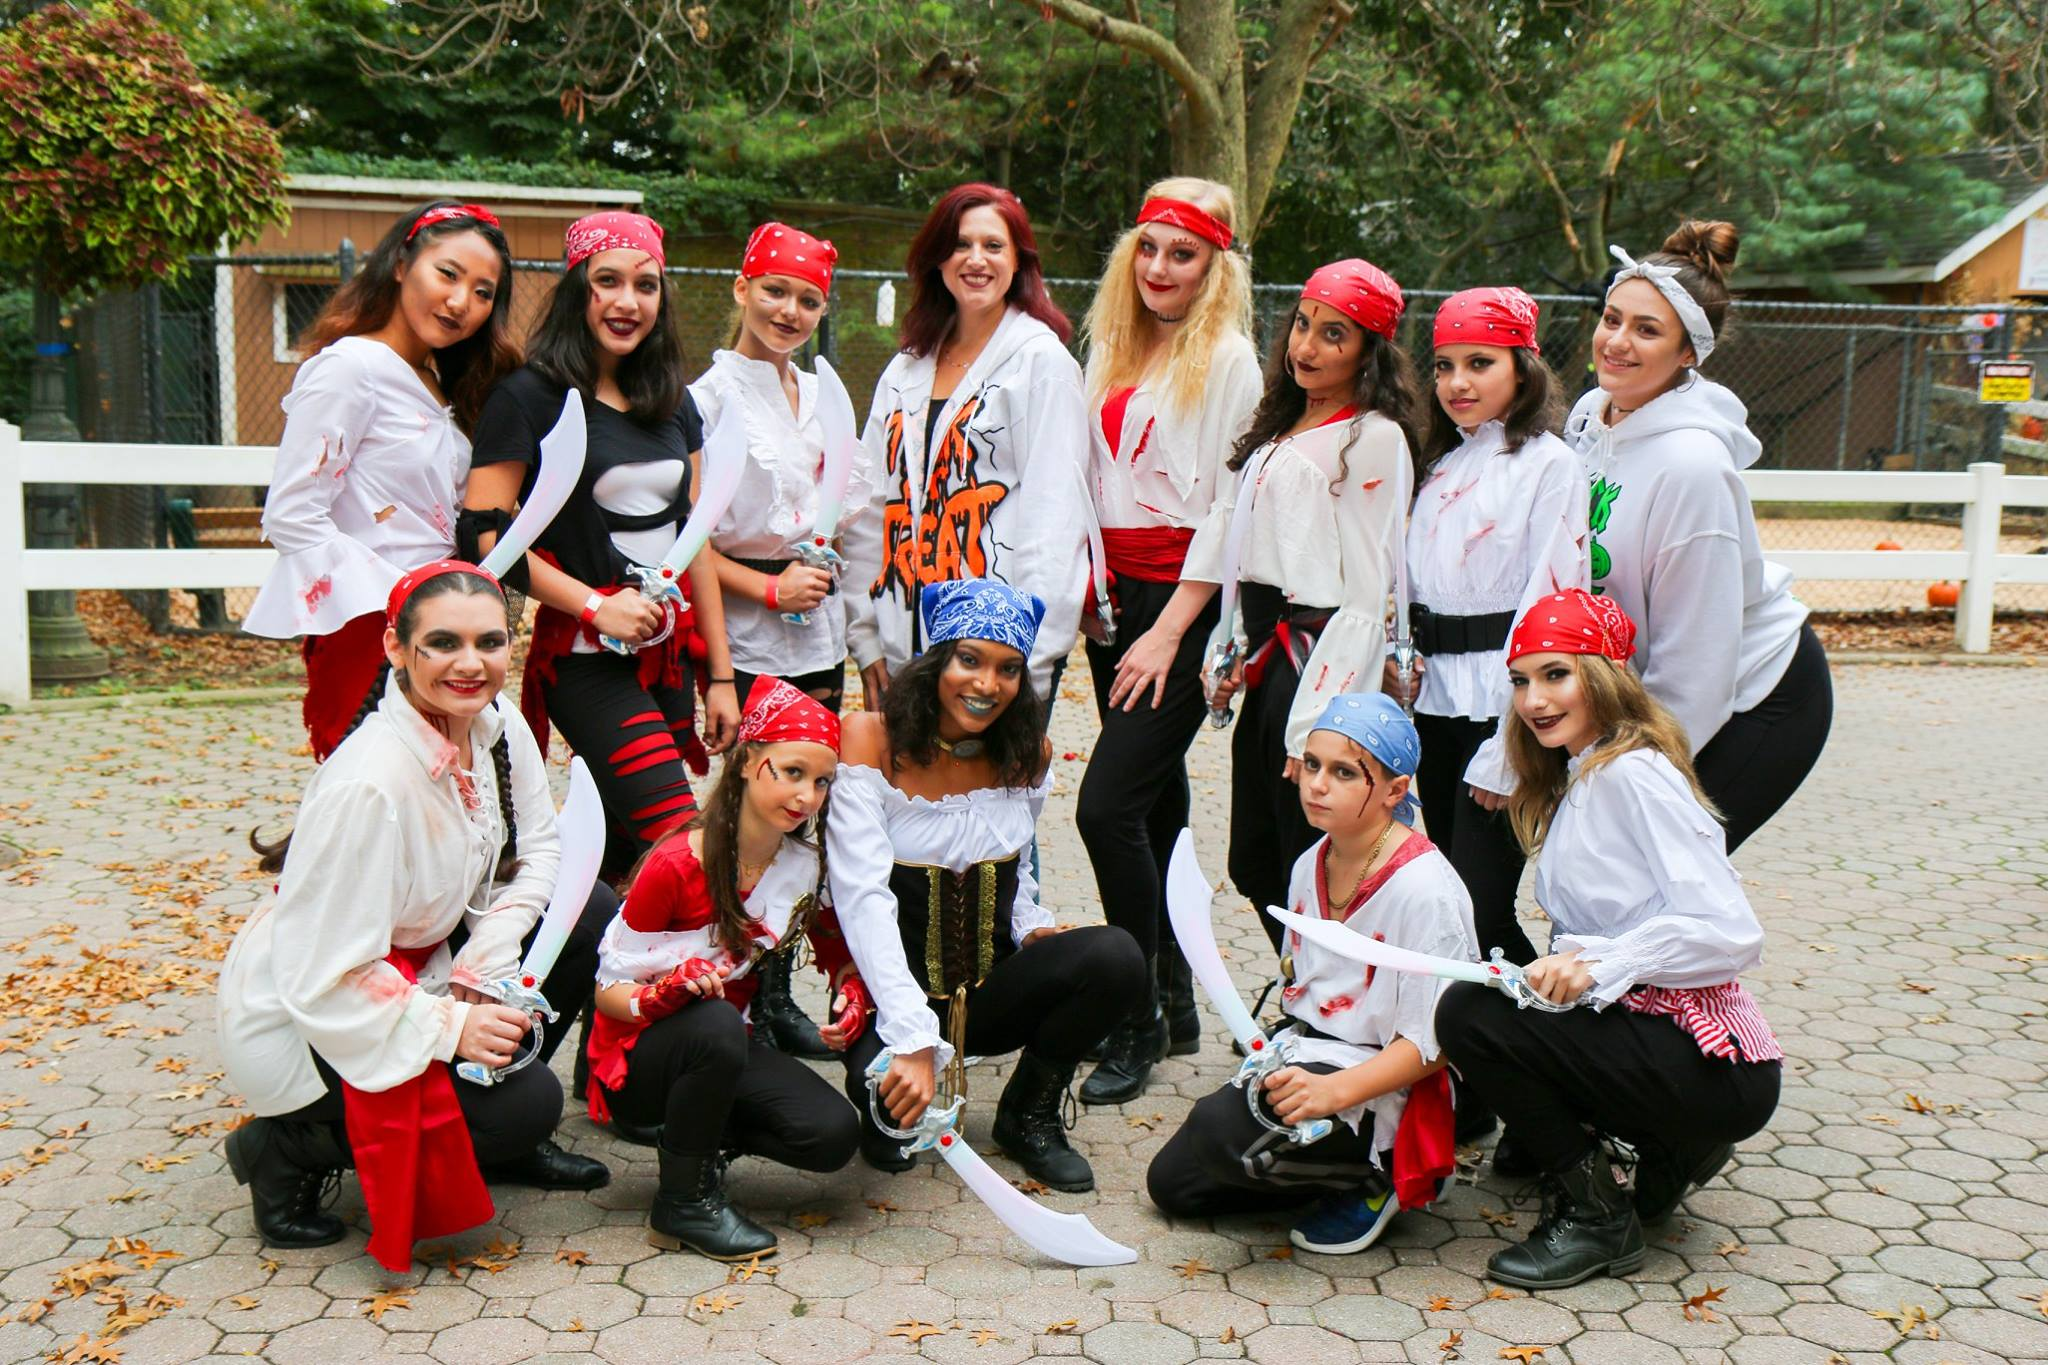 Staten Island Zoo's Spooktacular Performers!